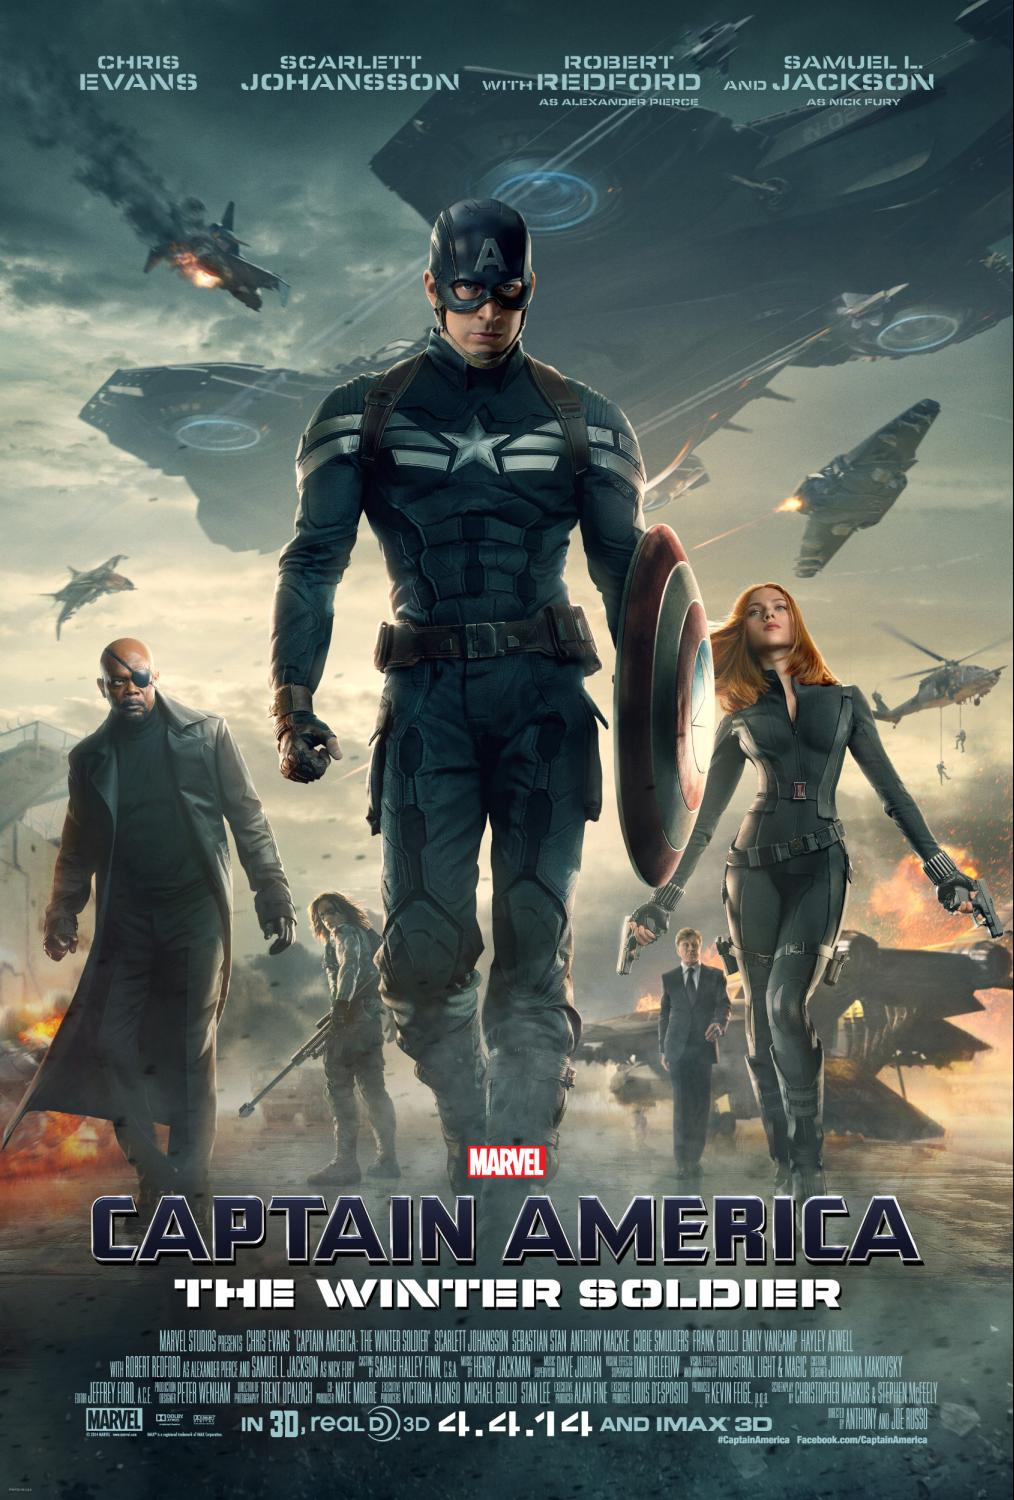 New Posters Now Available For Captain America The Winter Soldier